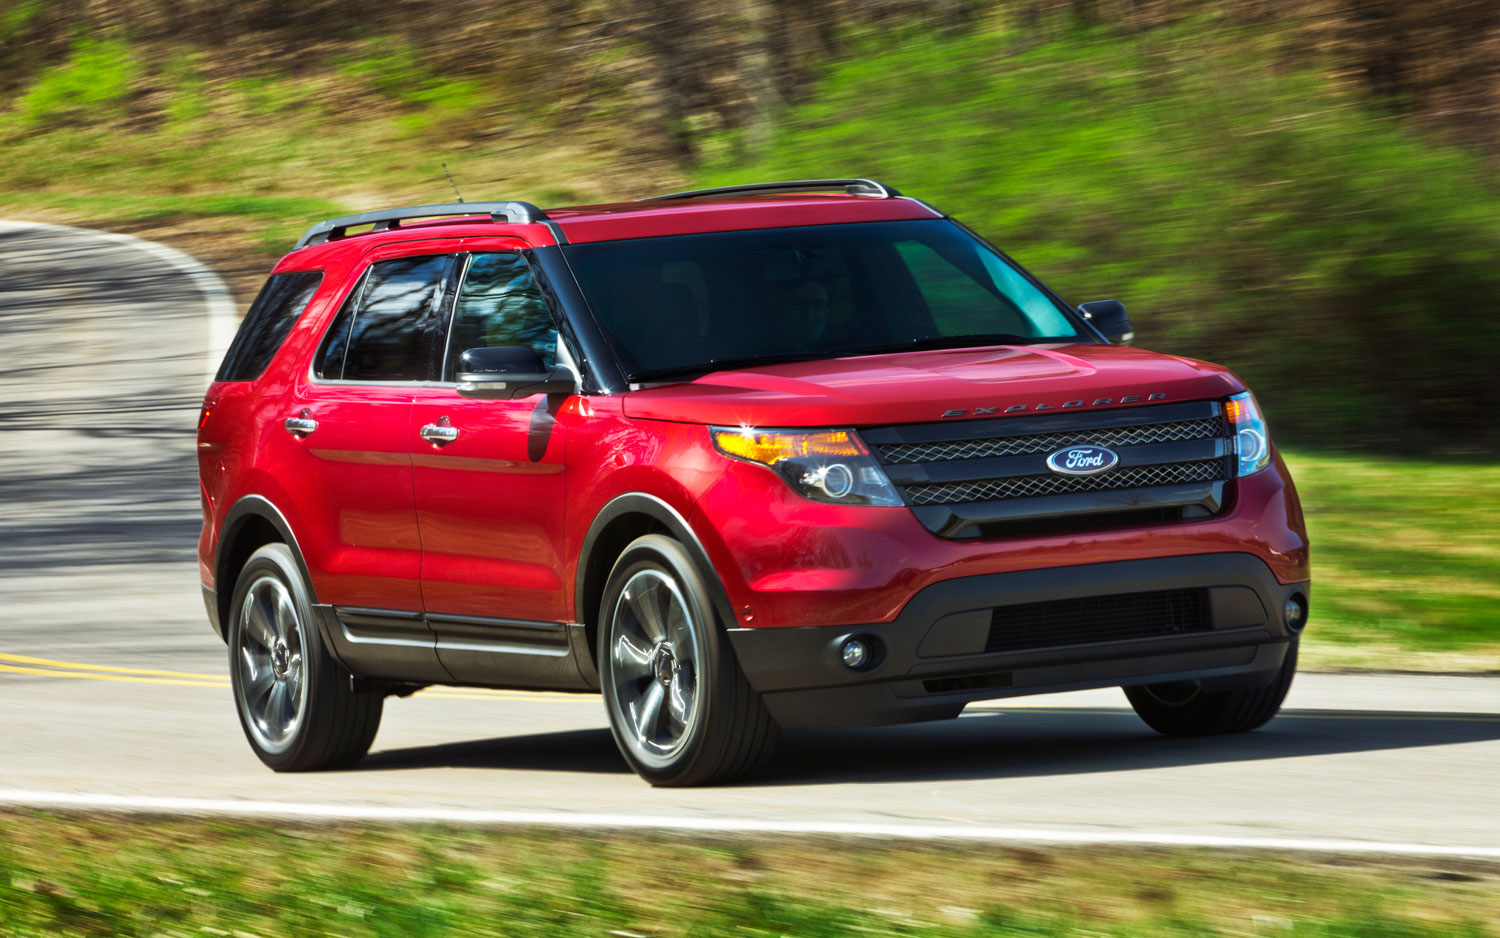 2013 Ford Explorer Sport Front Three Quarters View Red11